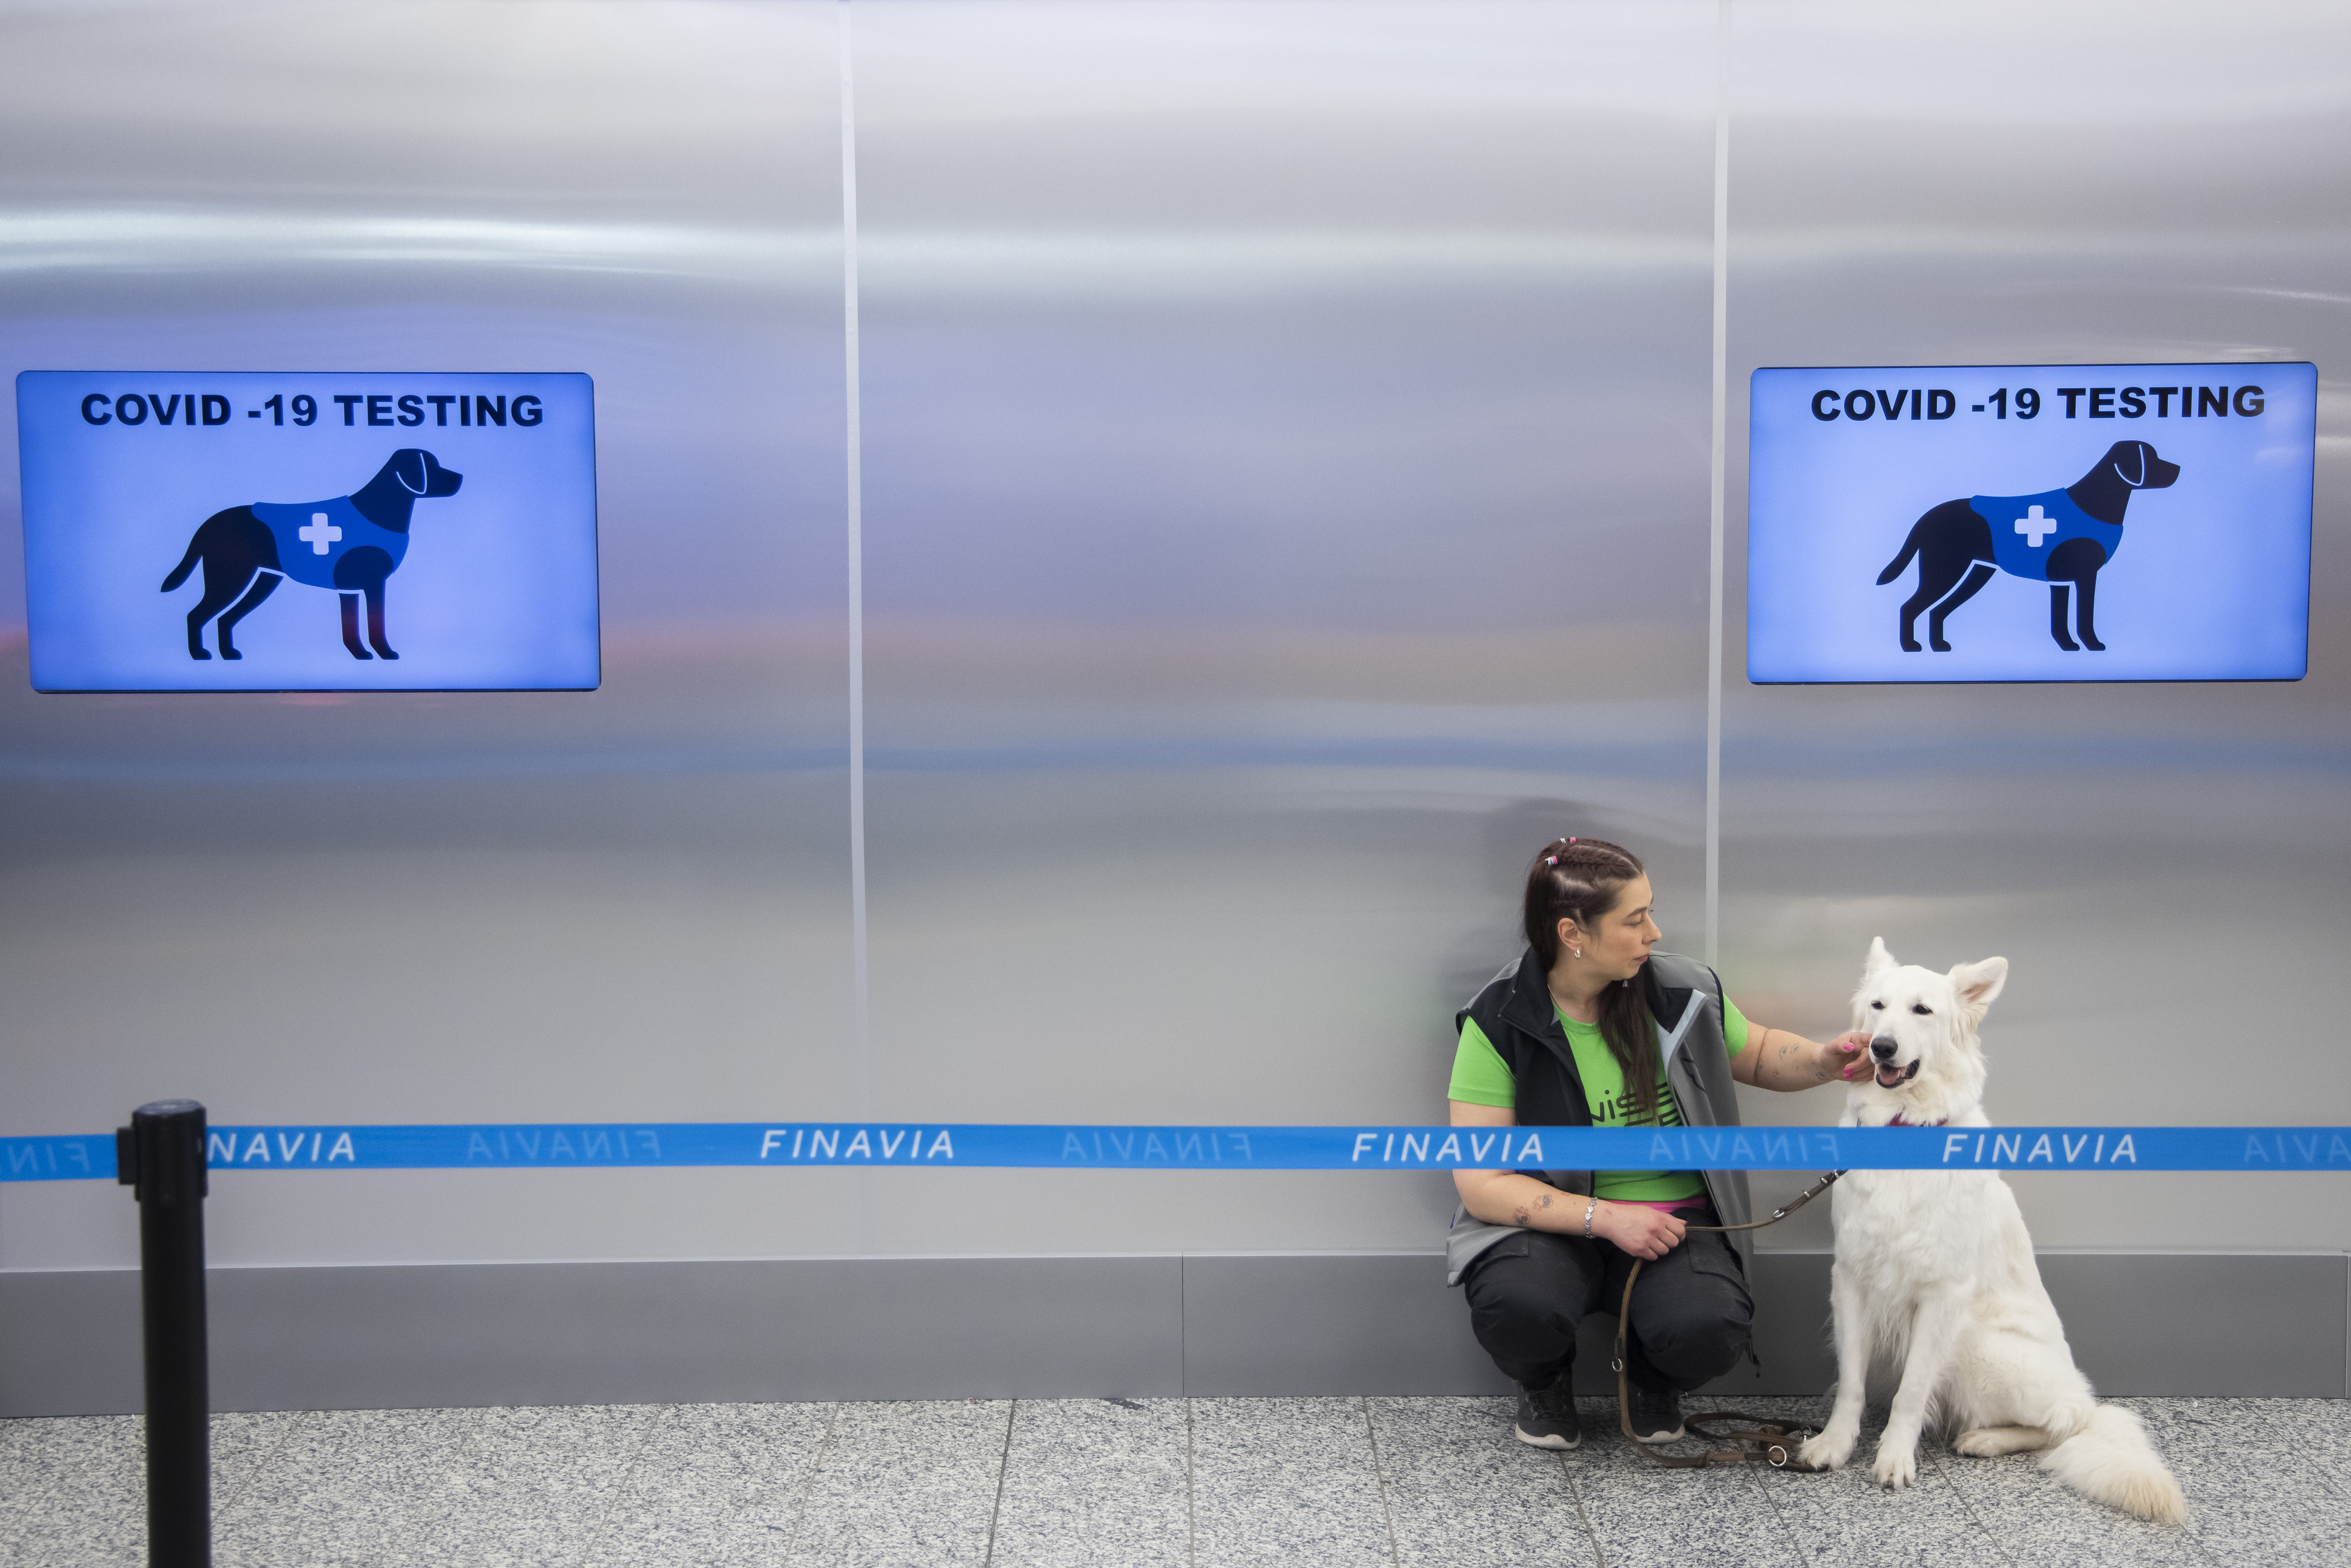 Helsinki Airport Uses Sniffer Dogs To Detect COVID-19